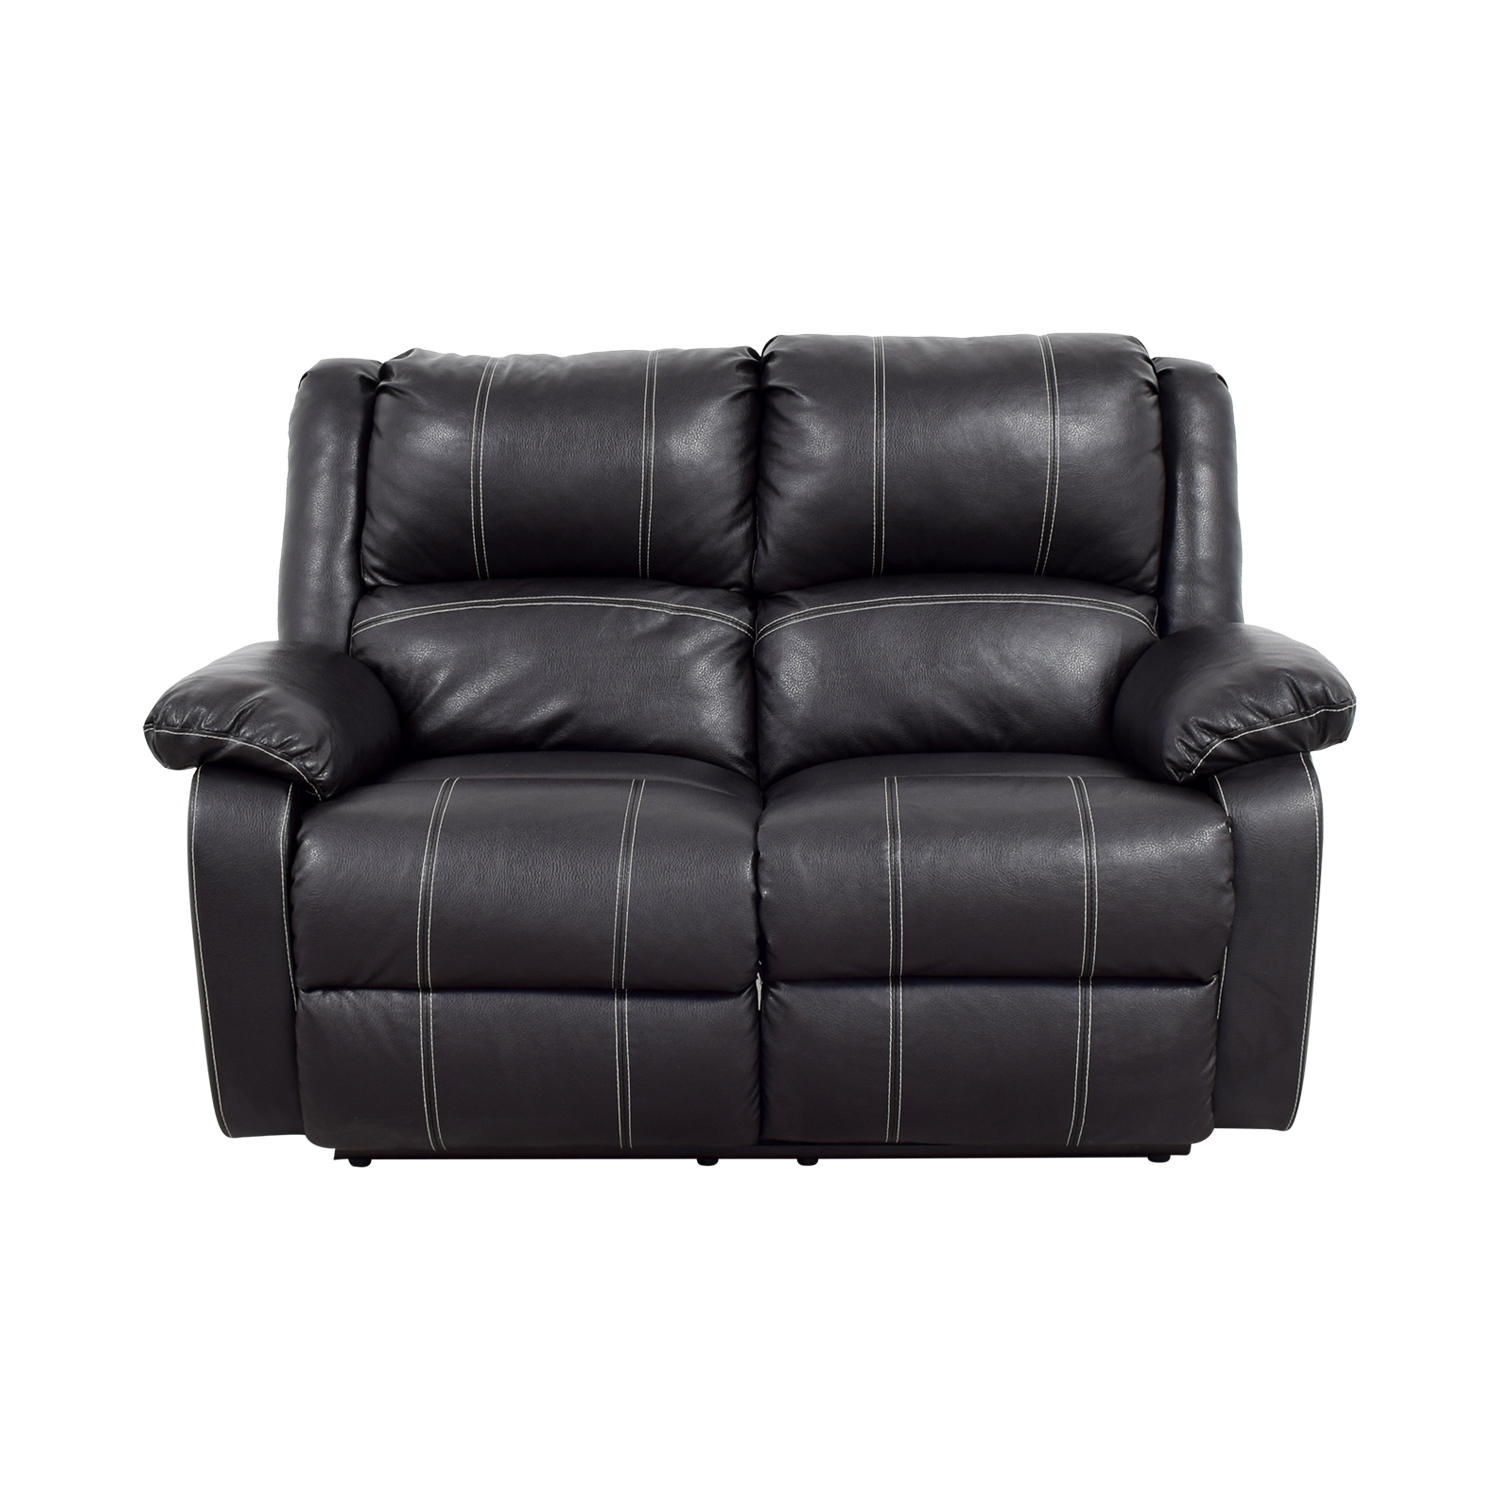 Acme Acme Black Leather Reclining Loveseat coupon ...  sc 1 st  Furnishare & 38% OFF - Acme Acme Black Leather Reclining Loveseat / Sofas islam-shia.org